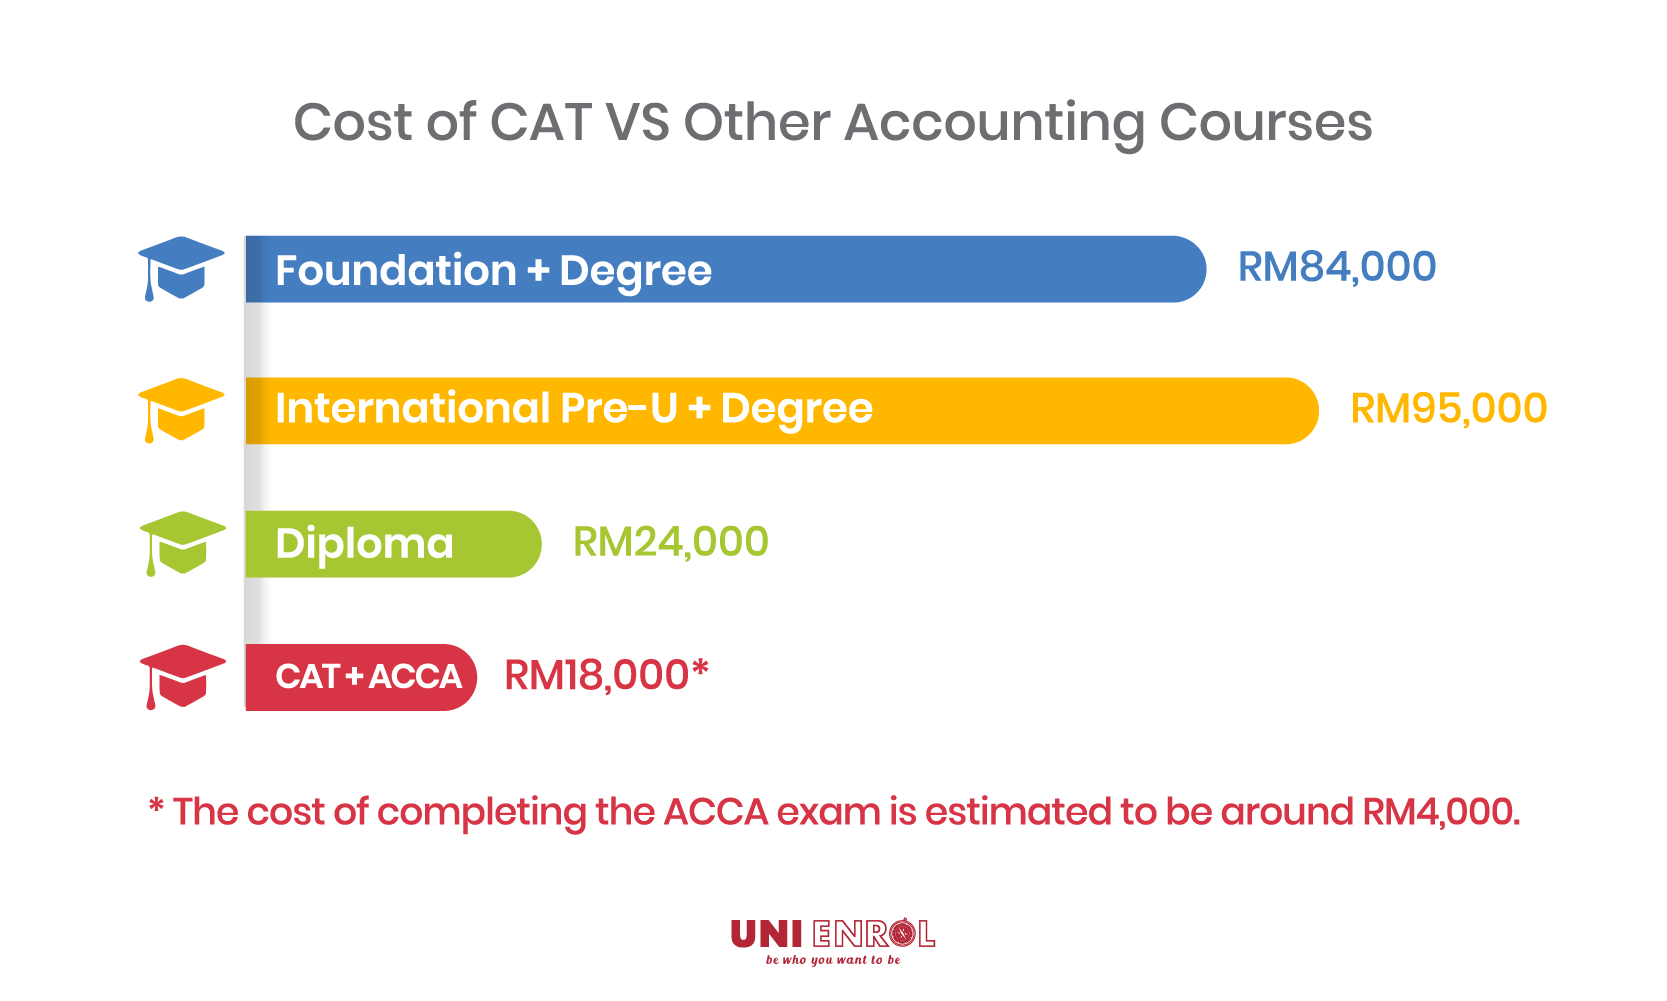 Studying a CAT and ACCA is the most affordable option for accounting students.